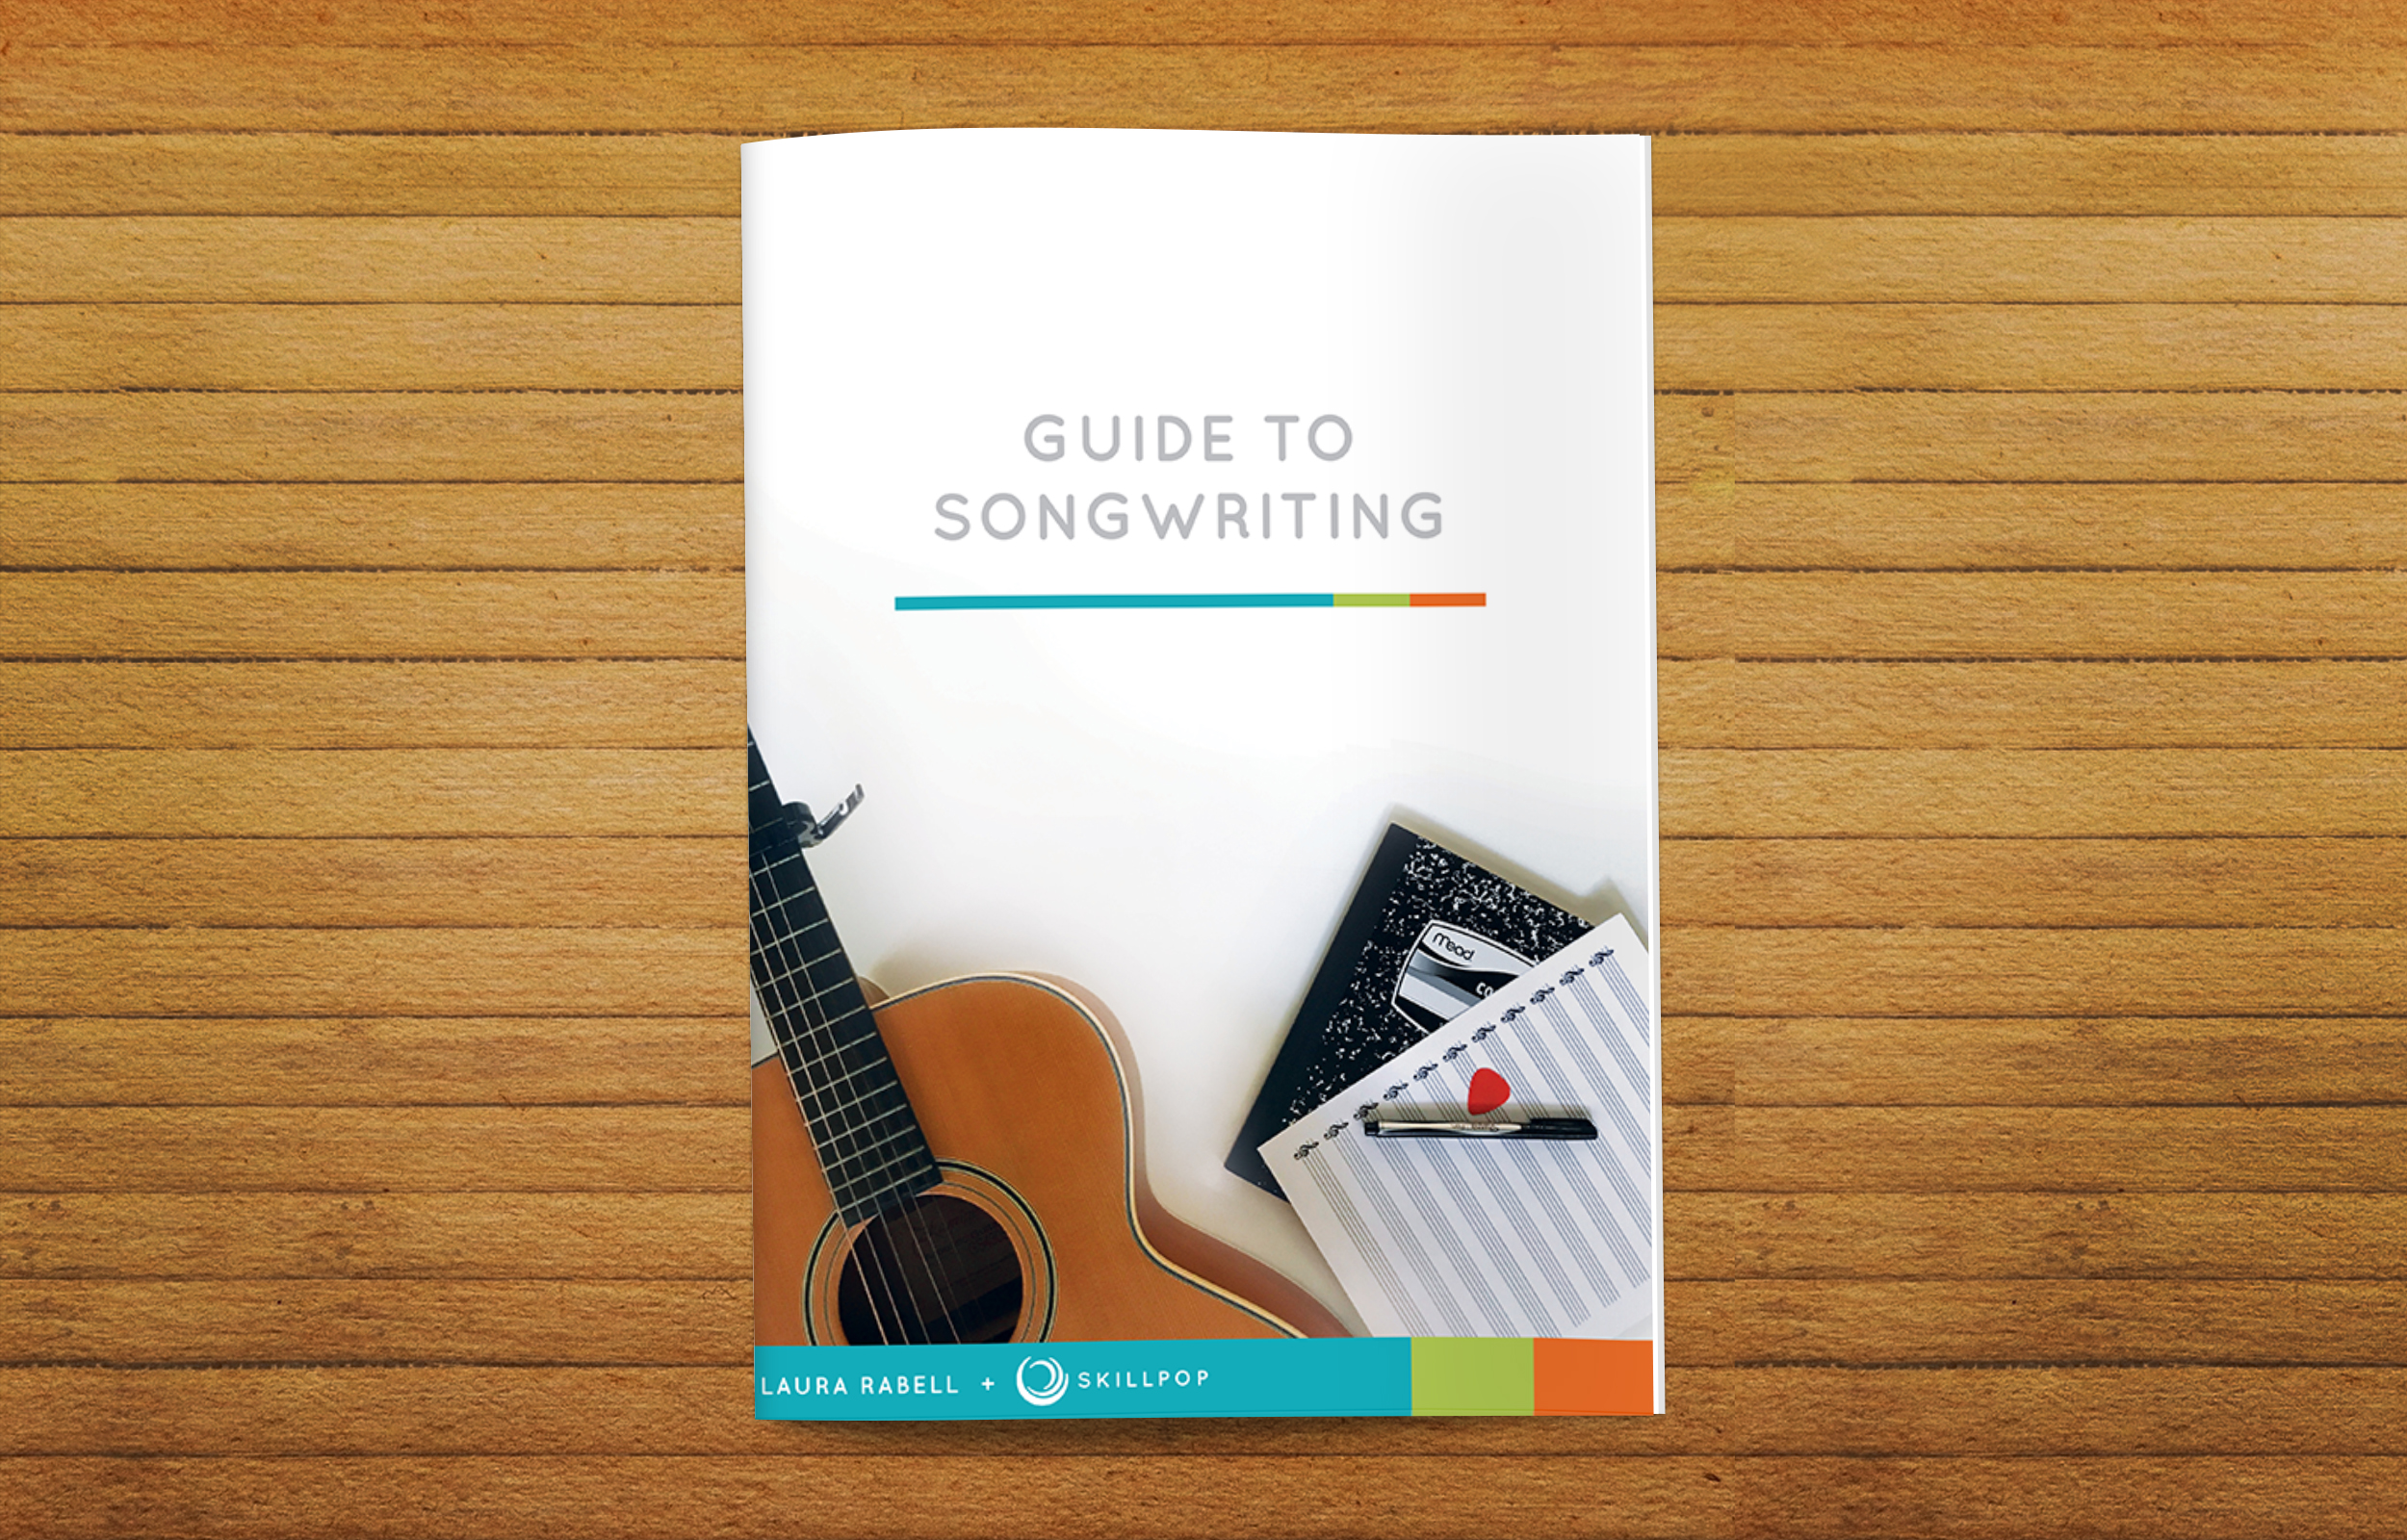 Guide to Songwriting